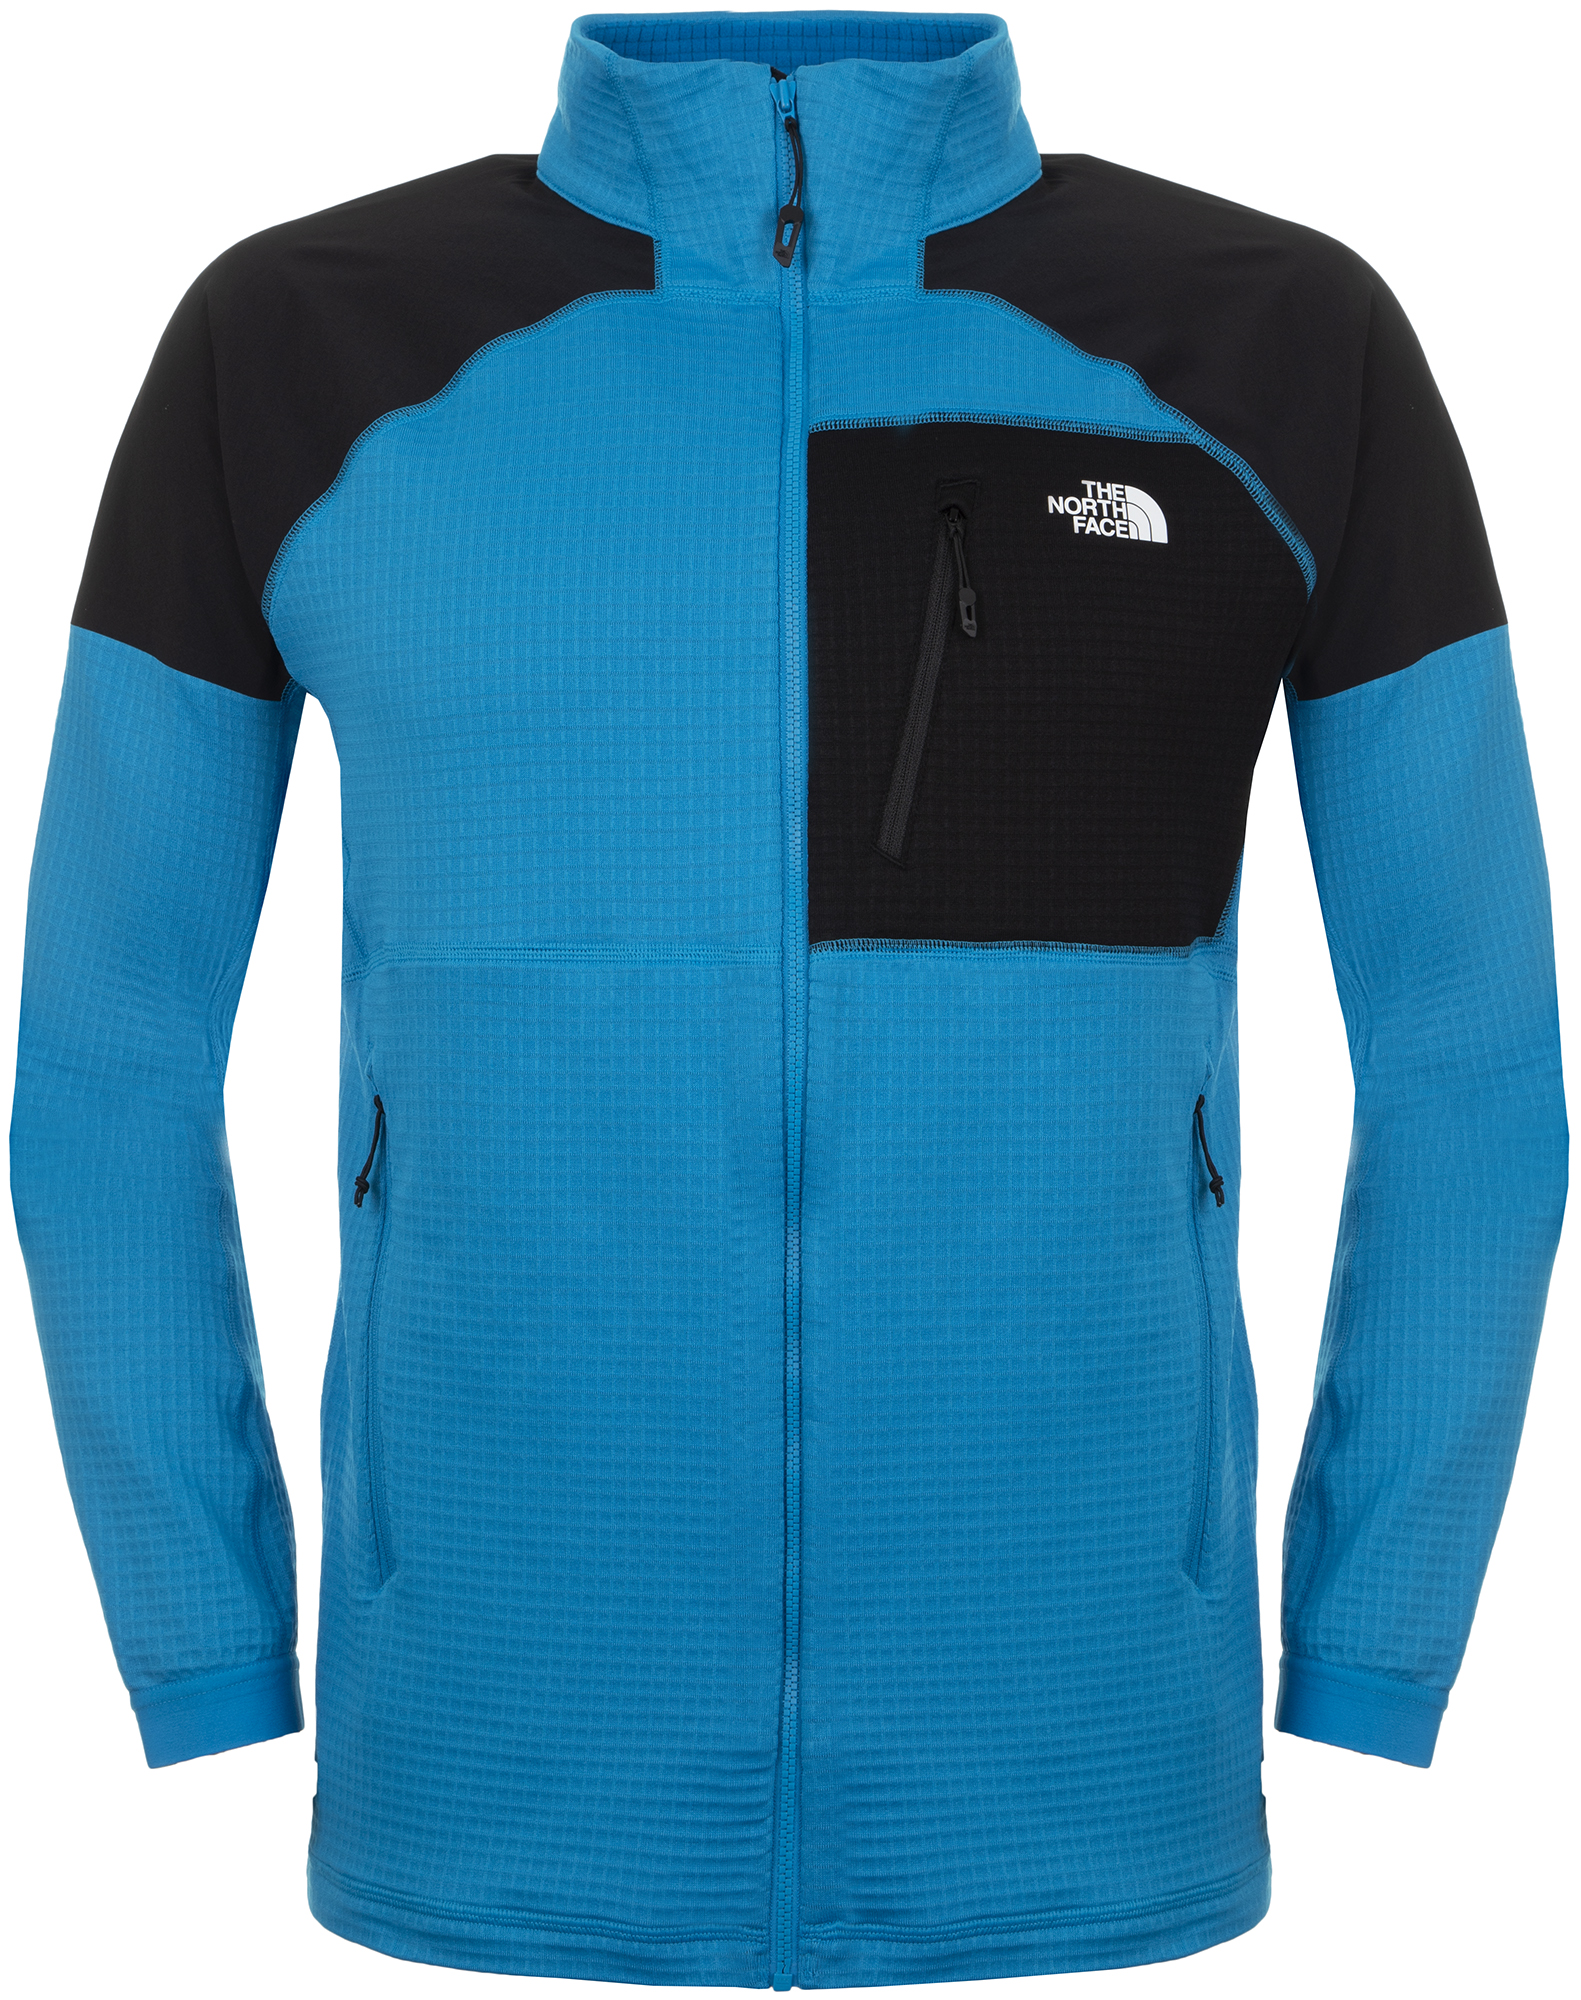 The North Face Джемпер флисовый мужской The North Face Impendor Grid, размер 52